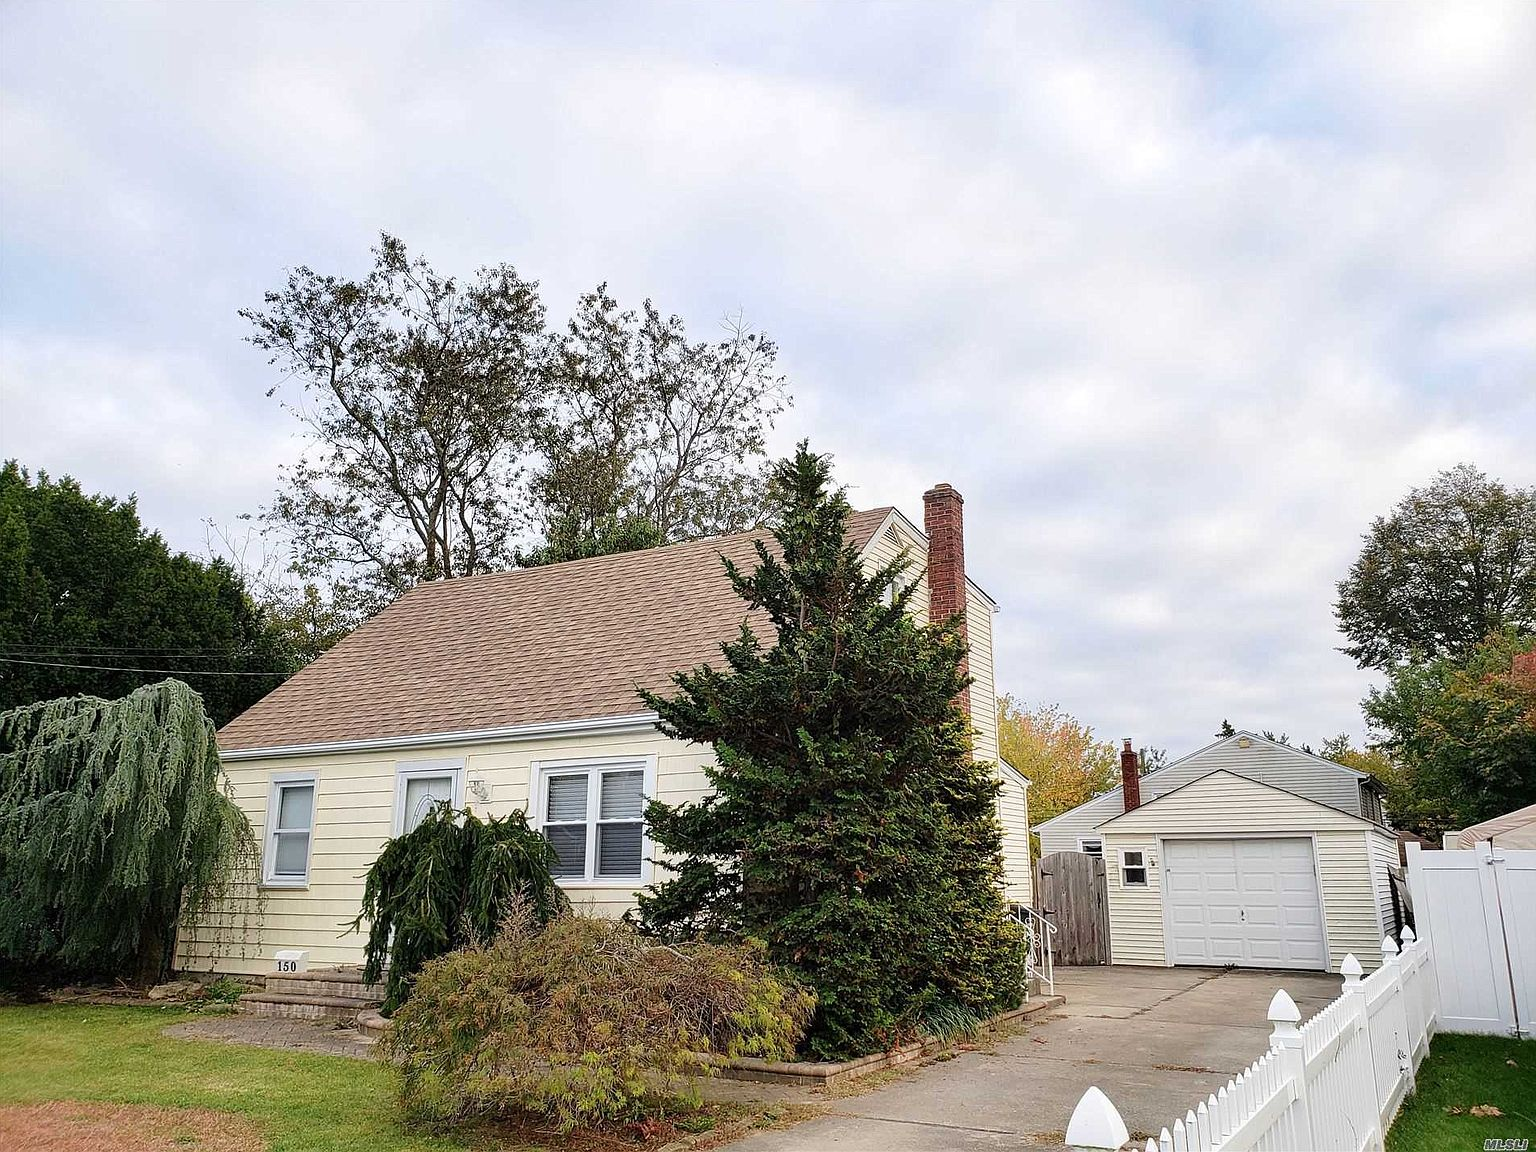 150 Pleasantview Ct Copiague Ny 11726 Zillow